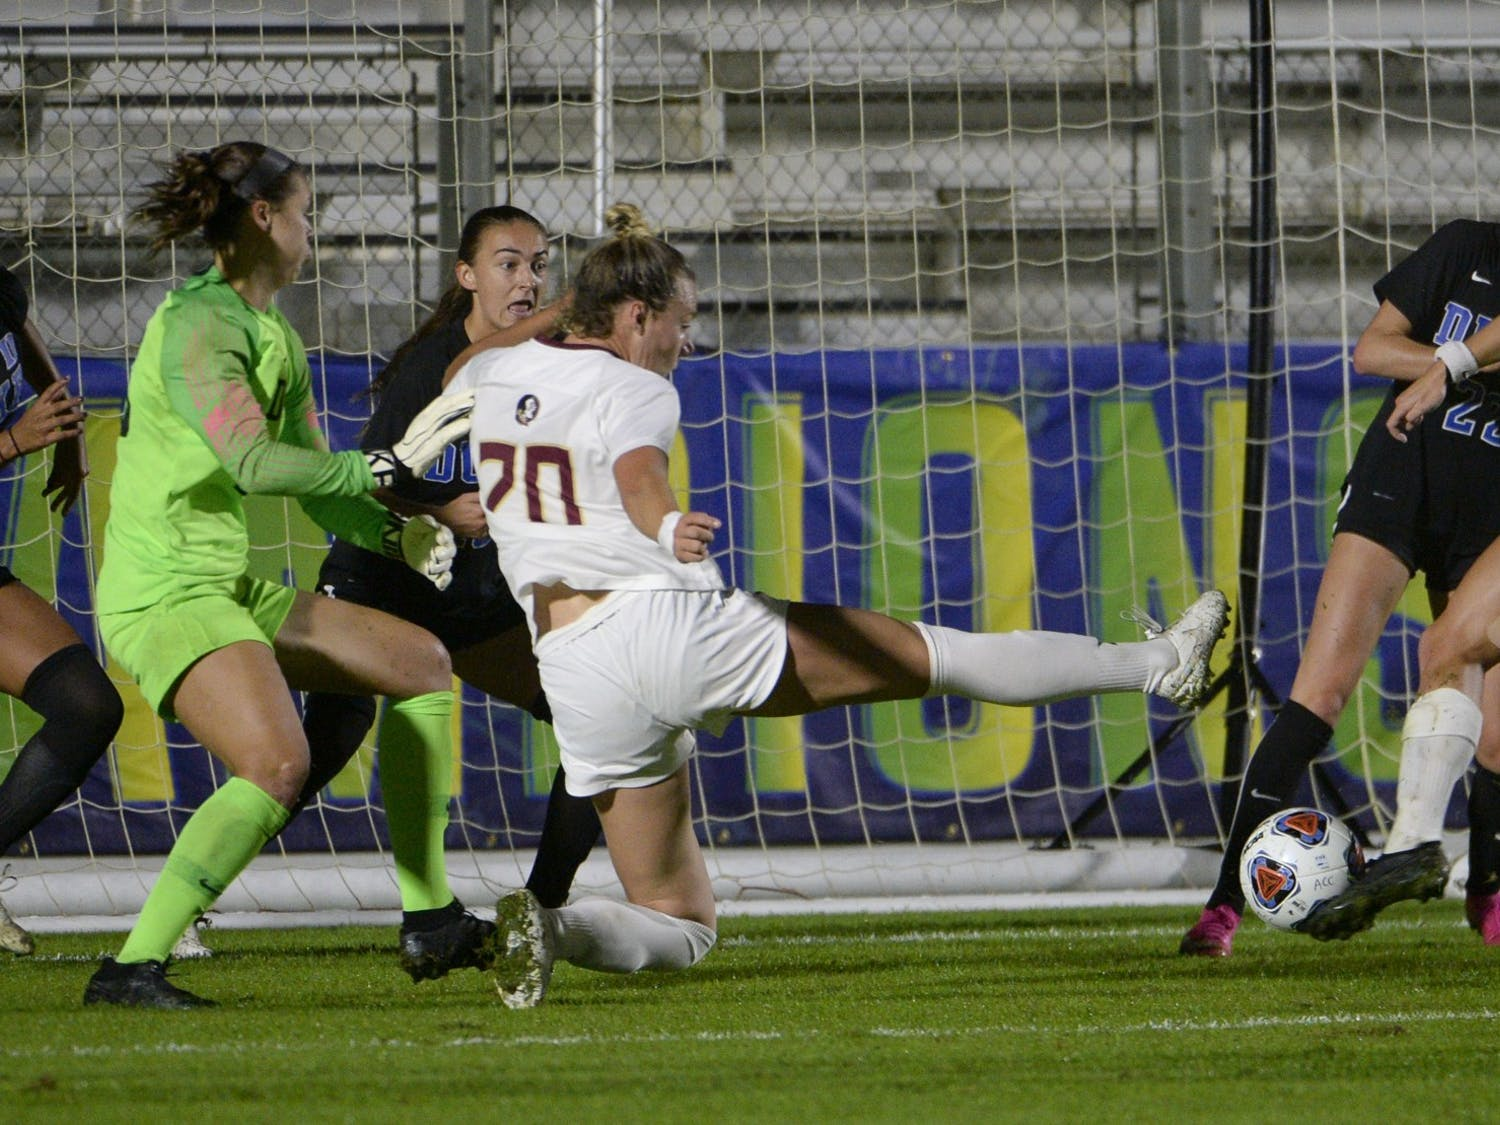 Duke women's soccer simply could not hold off Florida State's lethal offense in the ACC semifinals.